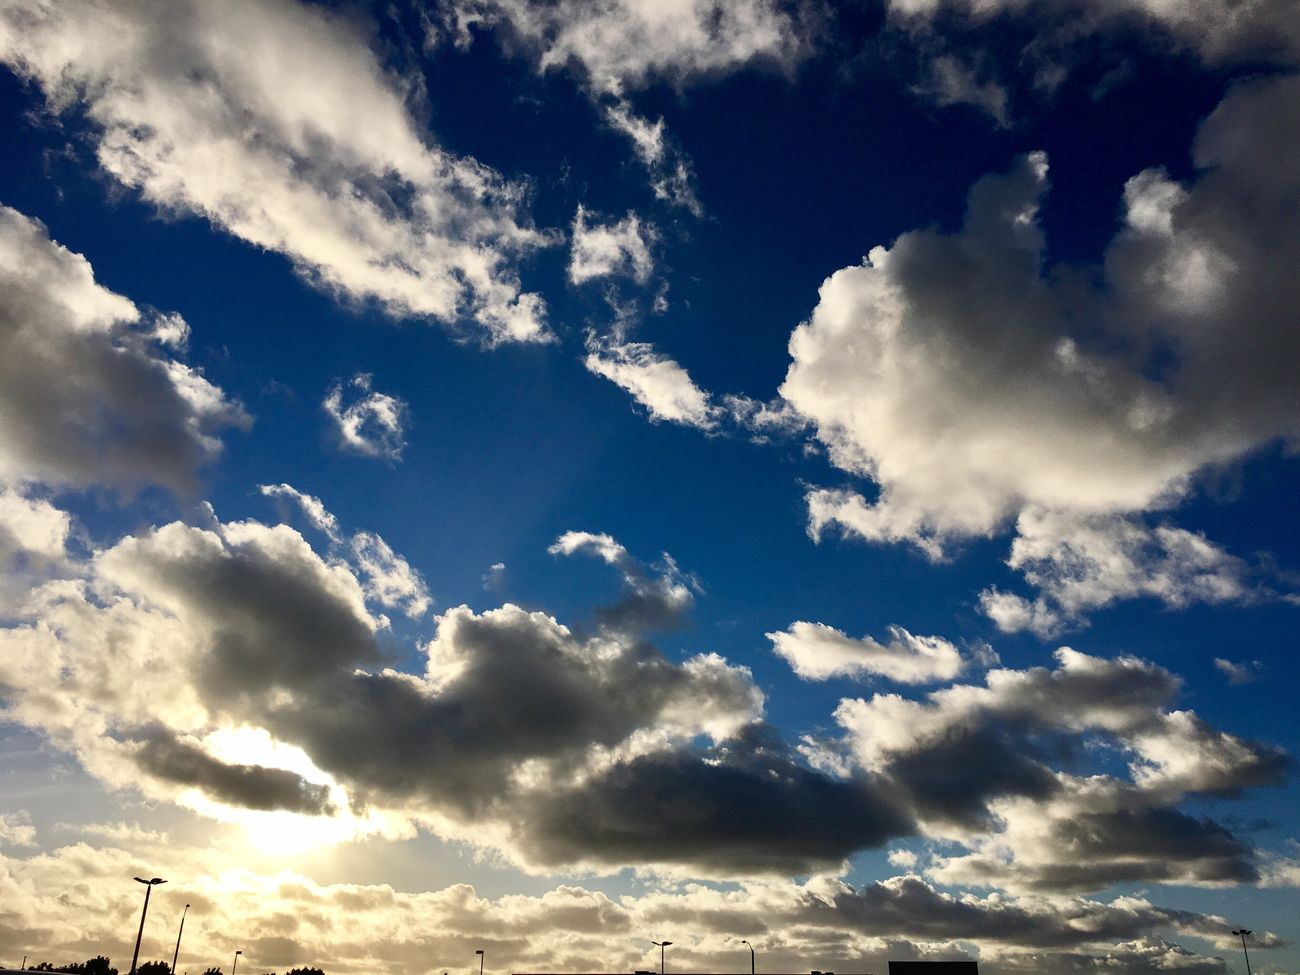 The sky after a nice rain. Cloud - Sky Sky Tranquility Cloudscape Scenics Beauty In Nature Cumulus Cloud No People Backgrounds Tranquil Scene Outdoors Fluffy Sky Only